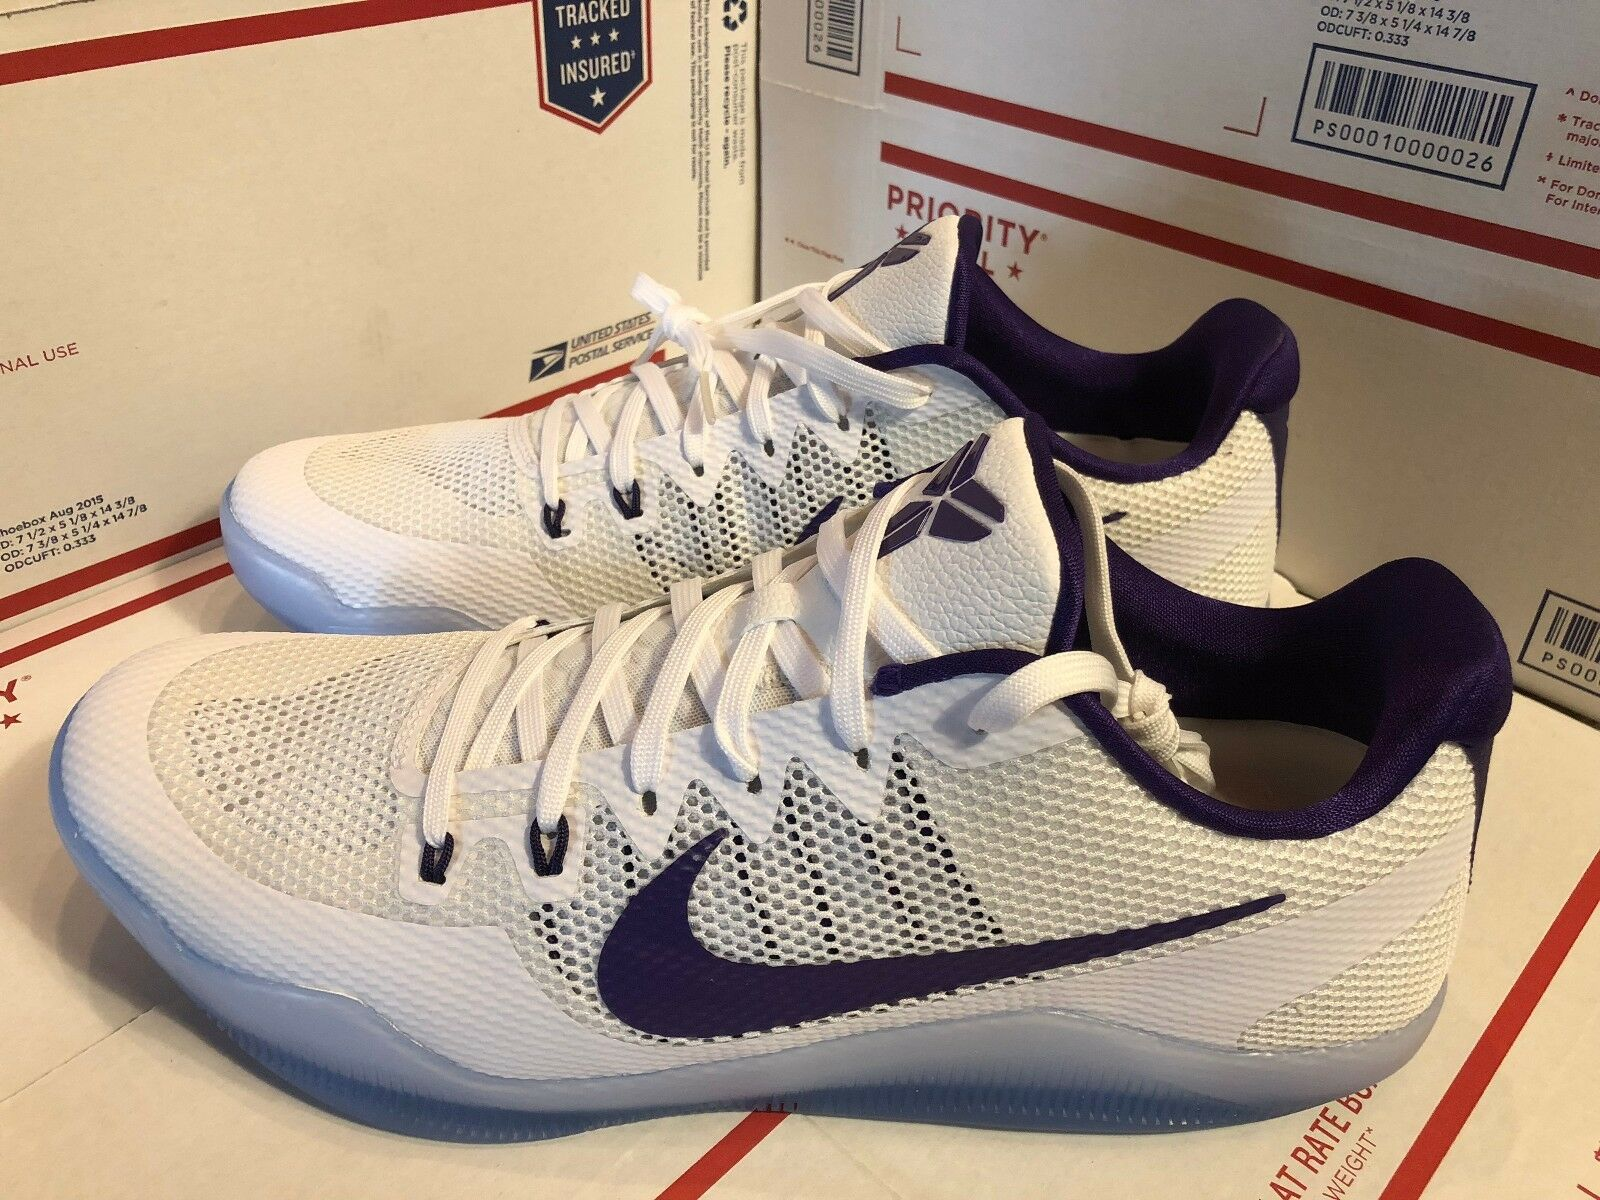 Nike Kobe XI 11 TB Basketball Shoes Men's White/Purple 856485-150 Price reduction Cheap women's shoes women's shoes